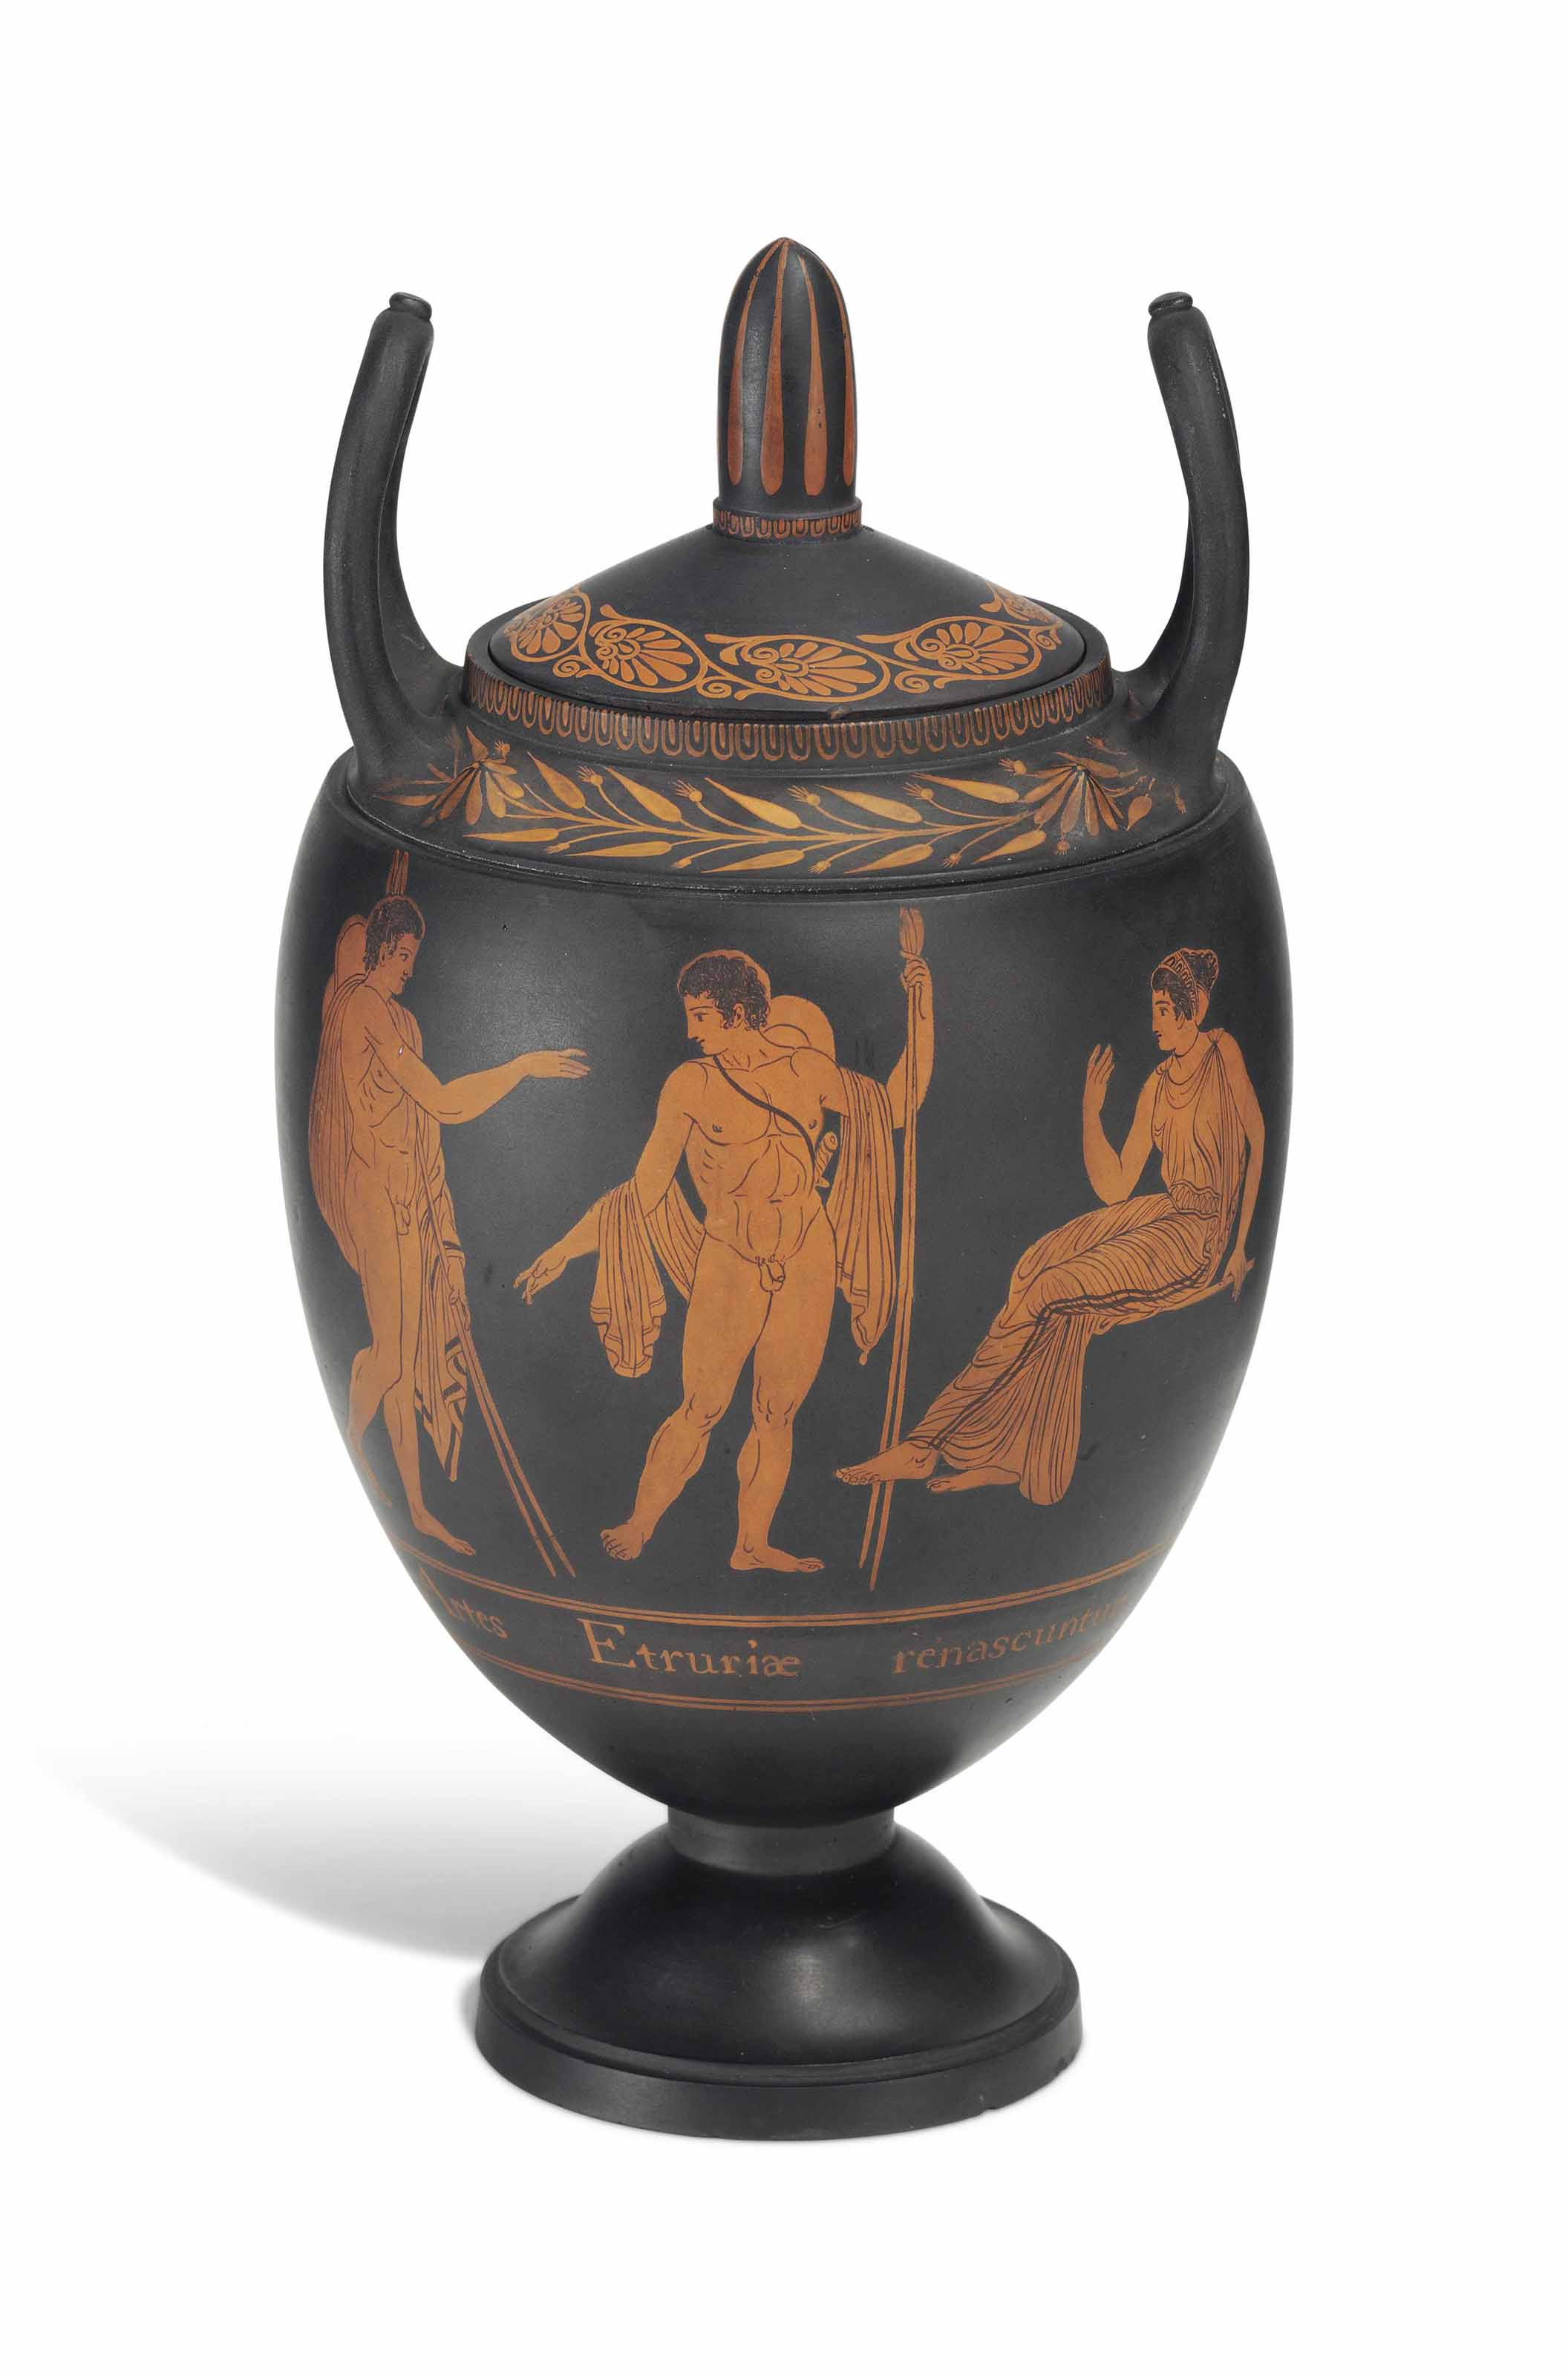 A WEDGWOOD BLACK 'BASALTES' ENCAUSTIC-DECORATED 'FIRST DAY'S VASE'